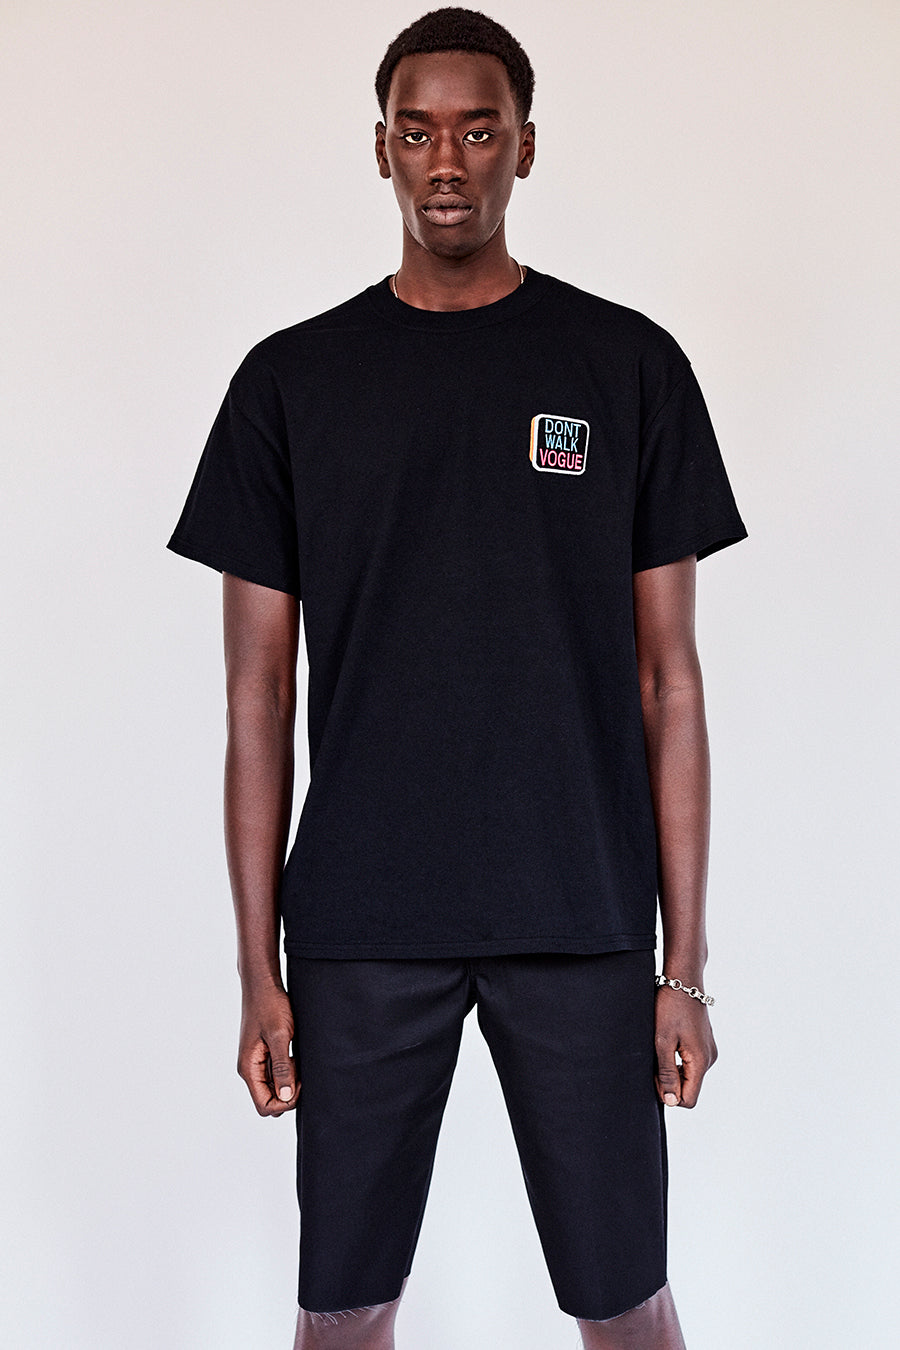 The Dont Walk Vogue Tee- Black